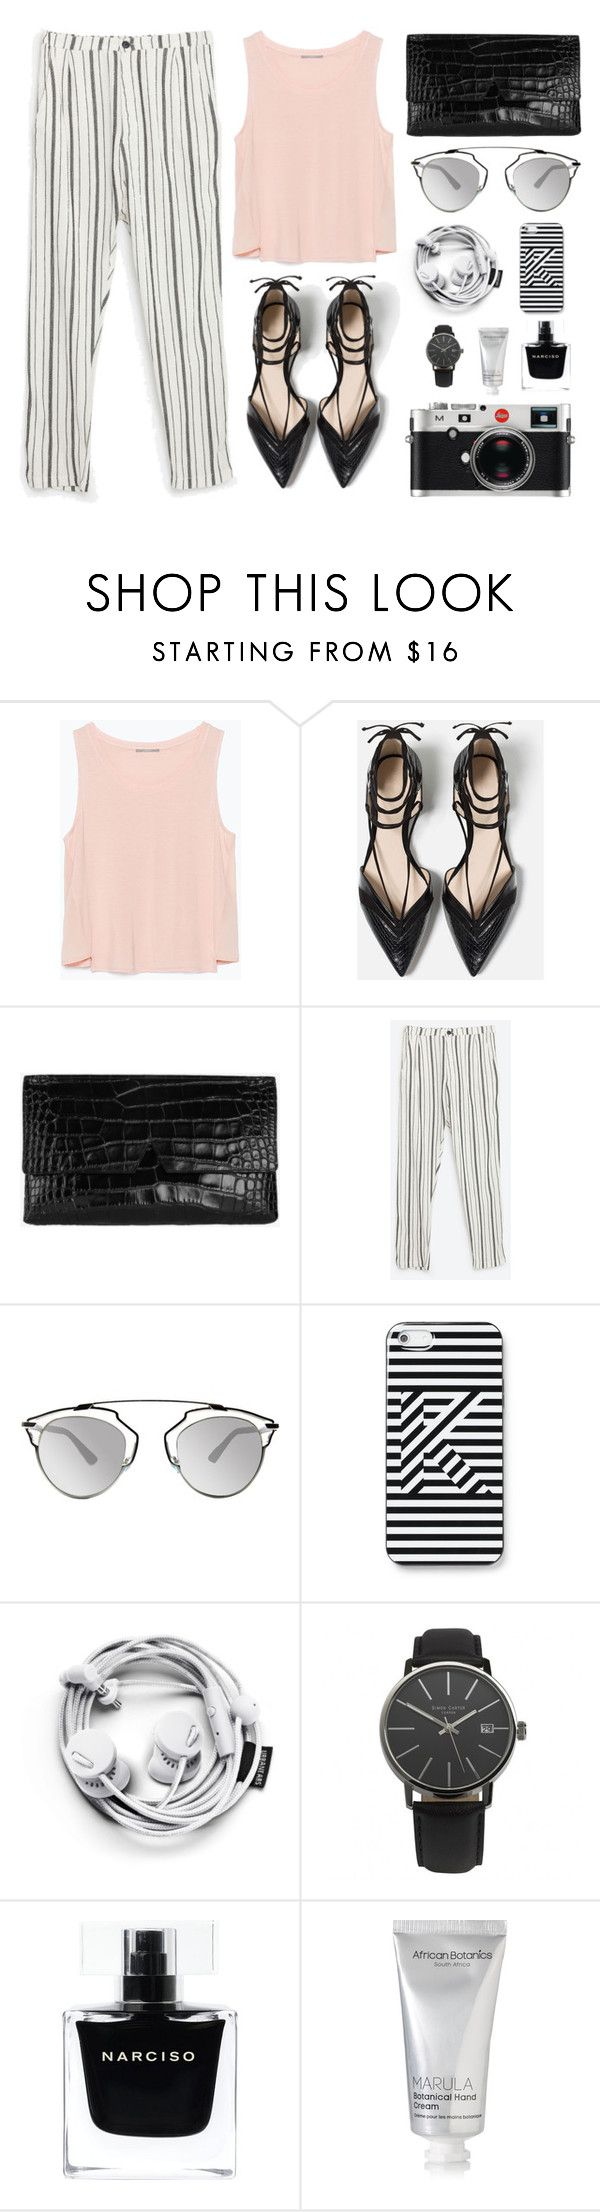 """""""Fashion #9"""" by twtl on Polyvore featuring Zara, Vince, Christian Dior, Kate Spade Saturday, Leica, Narciso Rodriguez, African Botanics, women's clothing, women and female"""